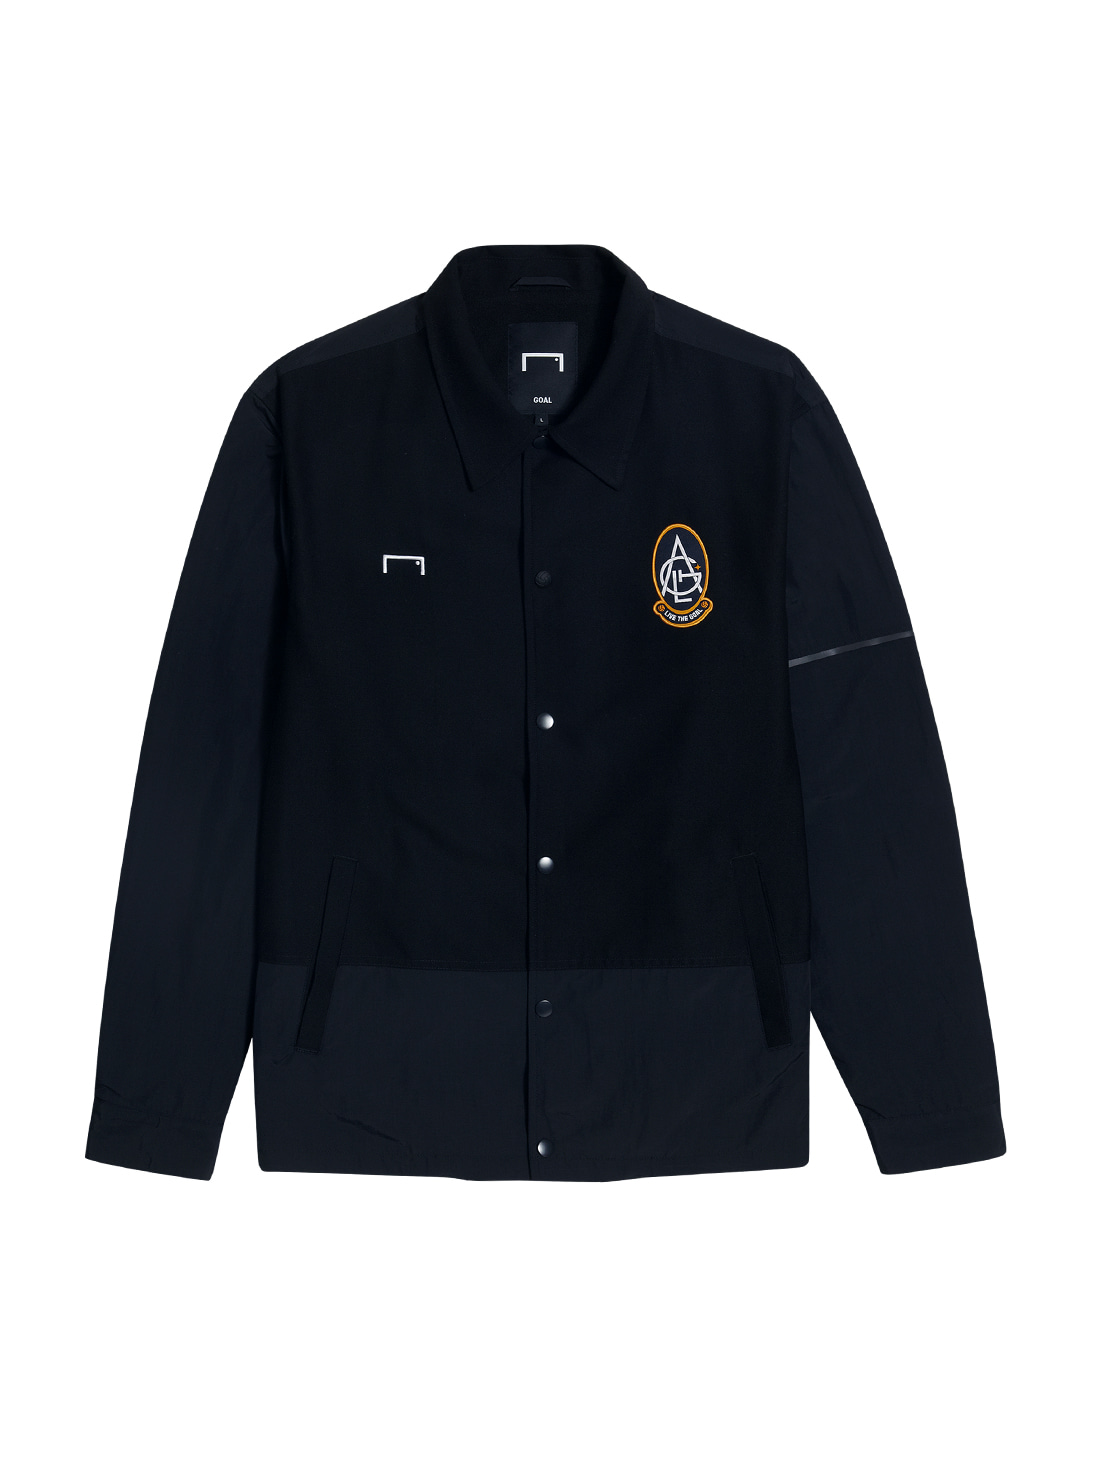 EMBLEM COACH JACKET - BLACK